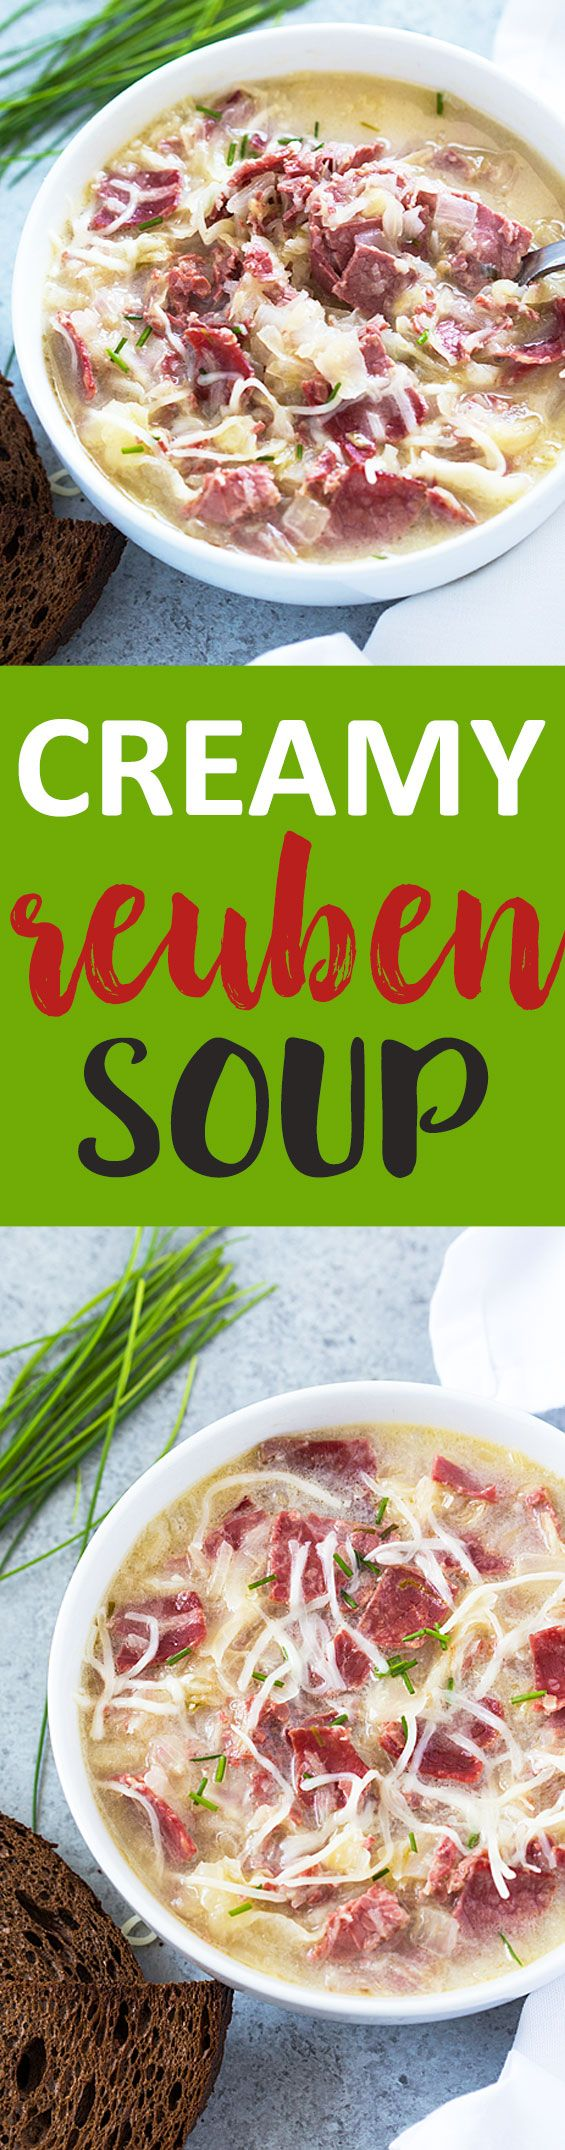 Creamy Reuben Soup - So hearty, comforting and full of corned beef and sauerkraut!